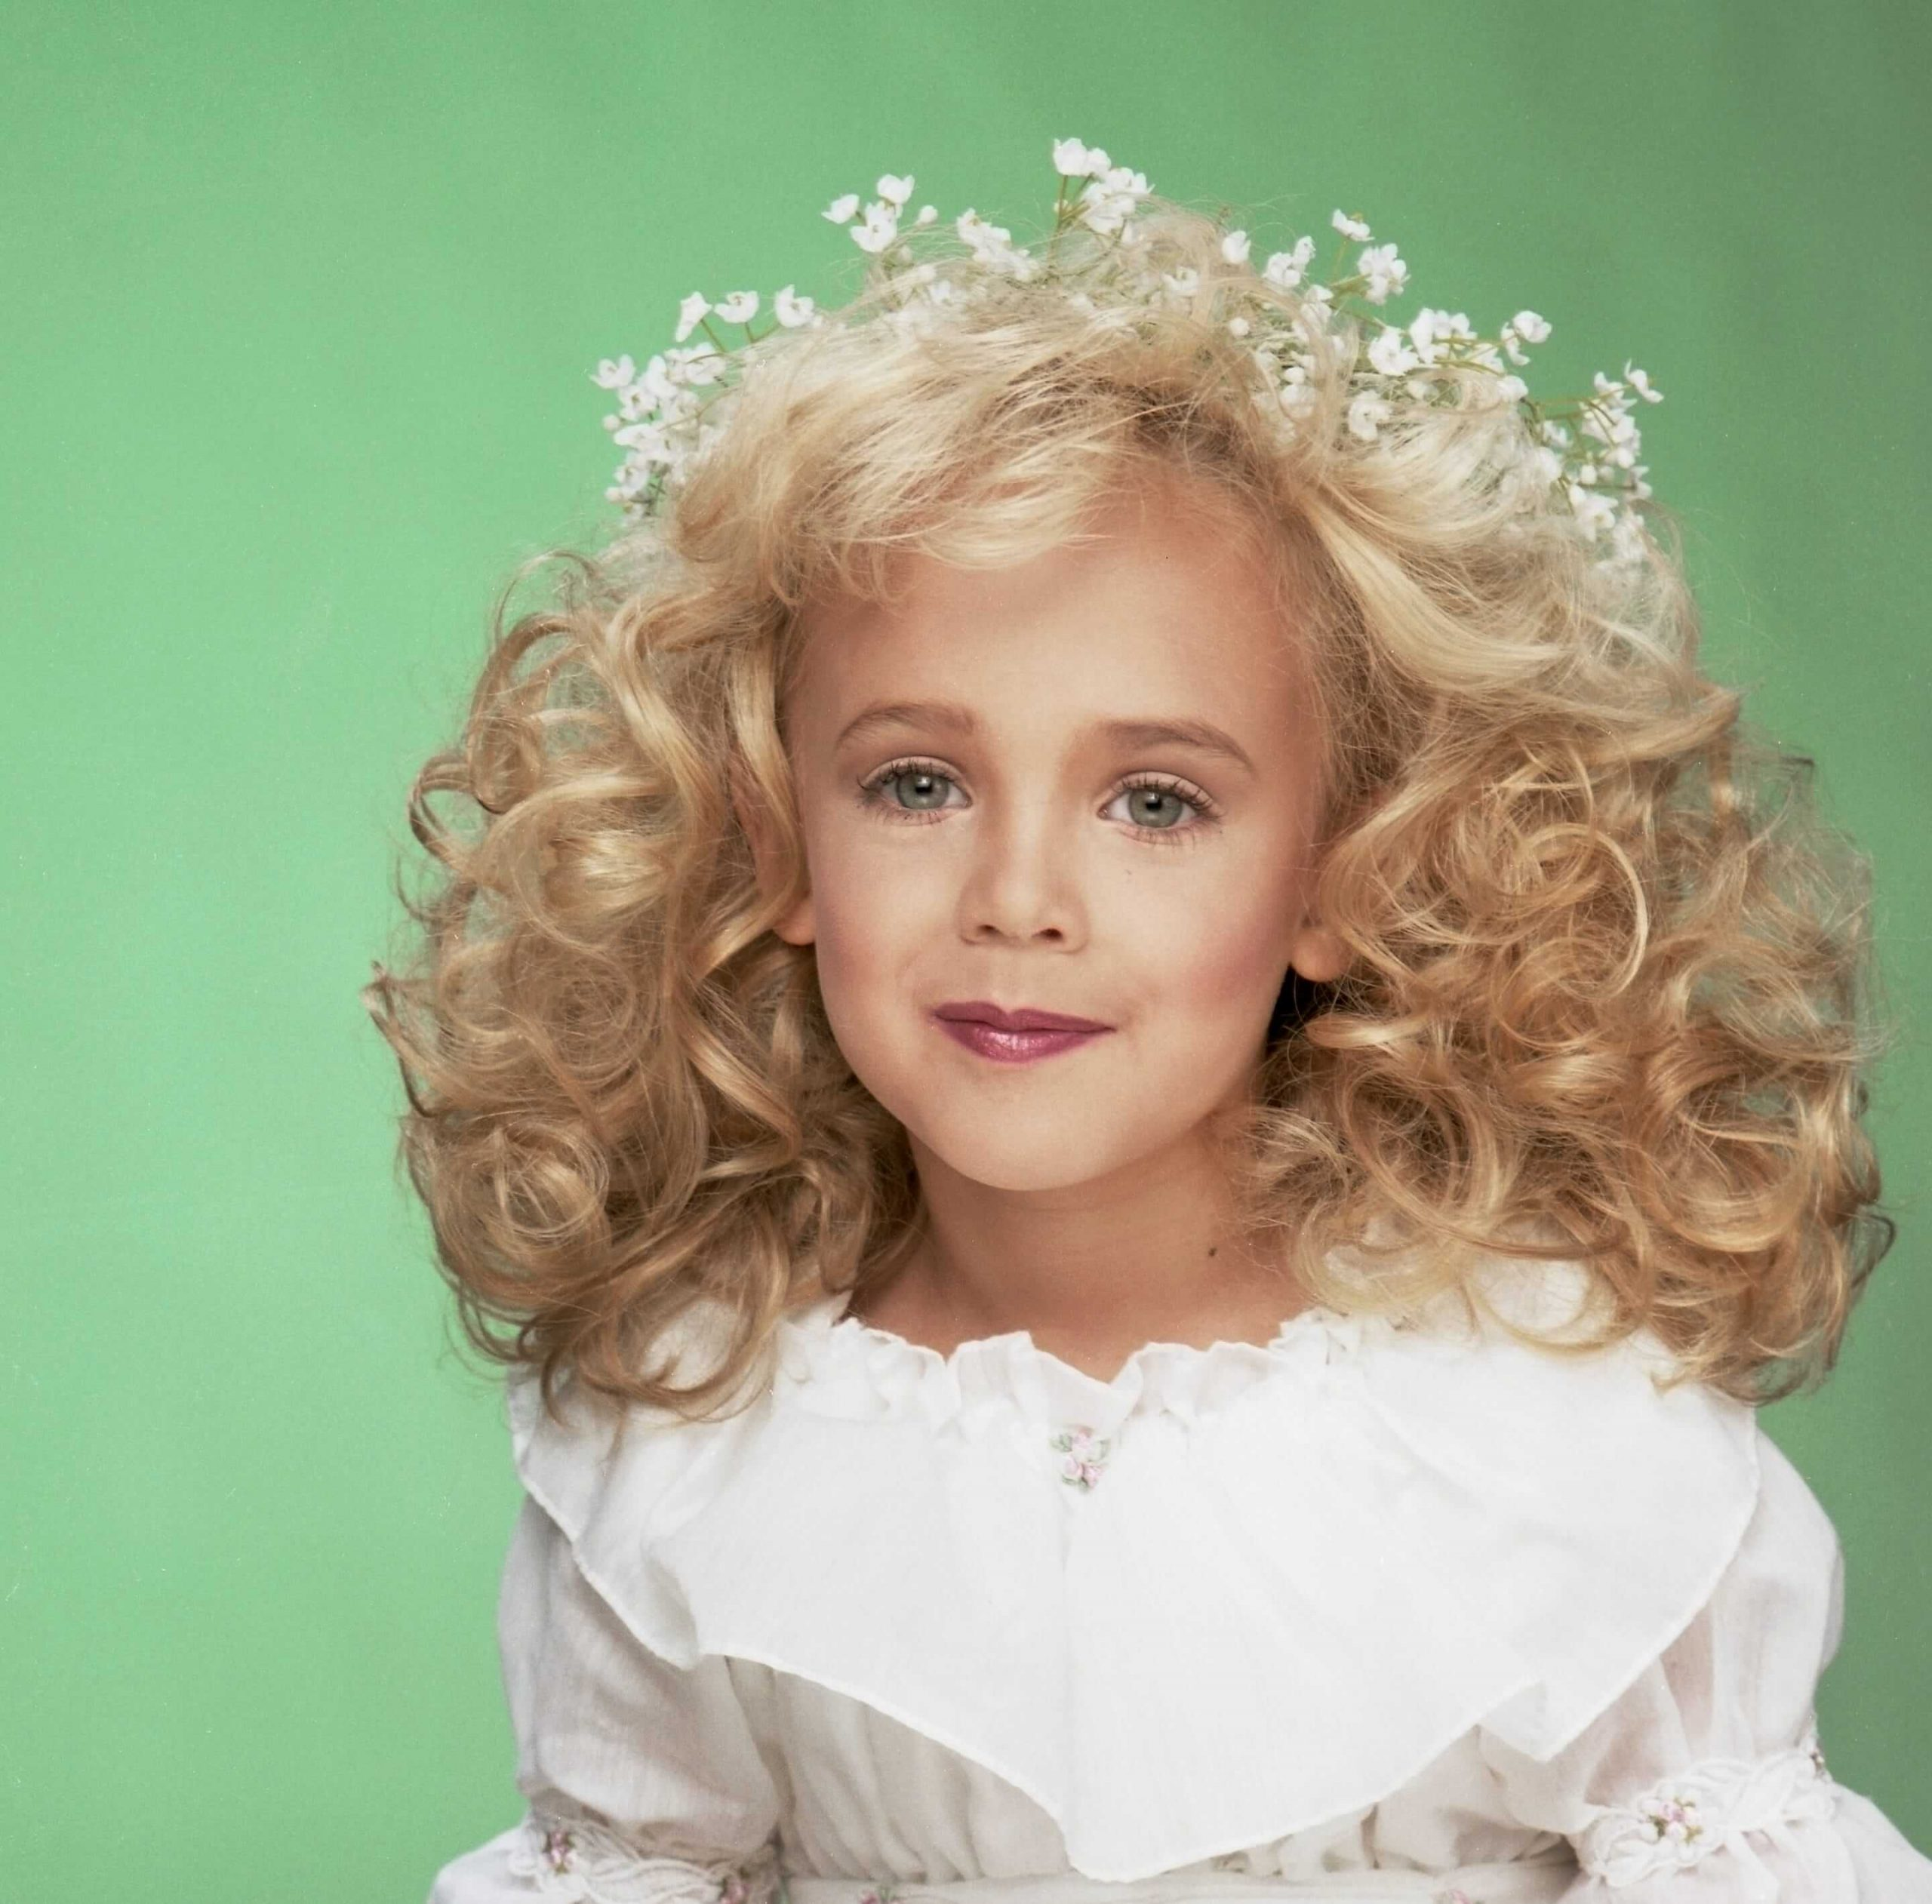 JonBenét Ramsey's Half-Brother Is Confident They Can Figure Out What Led To 6-Year-Old's Death